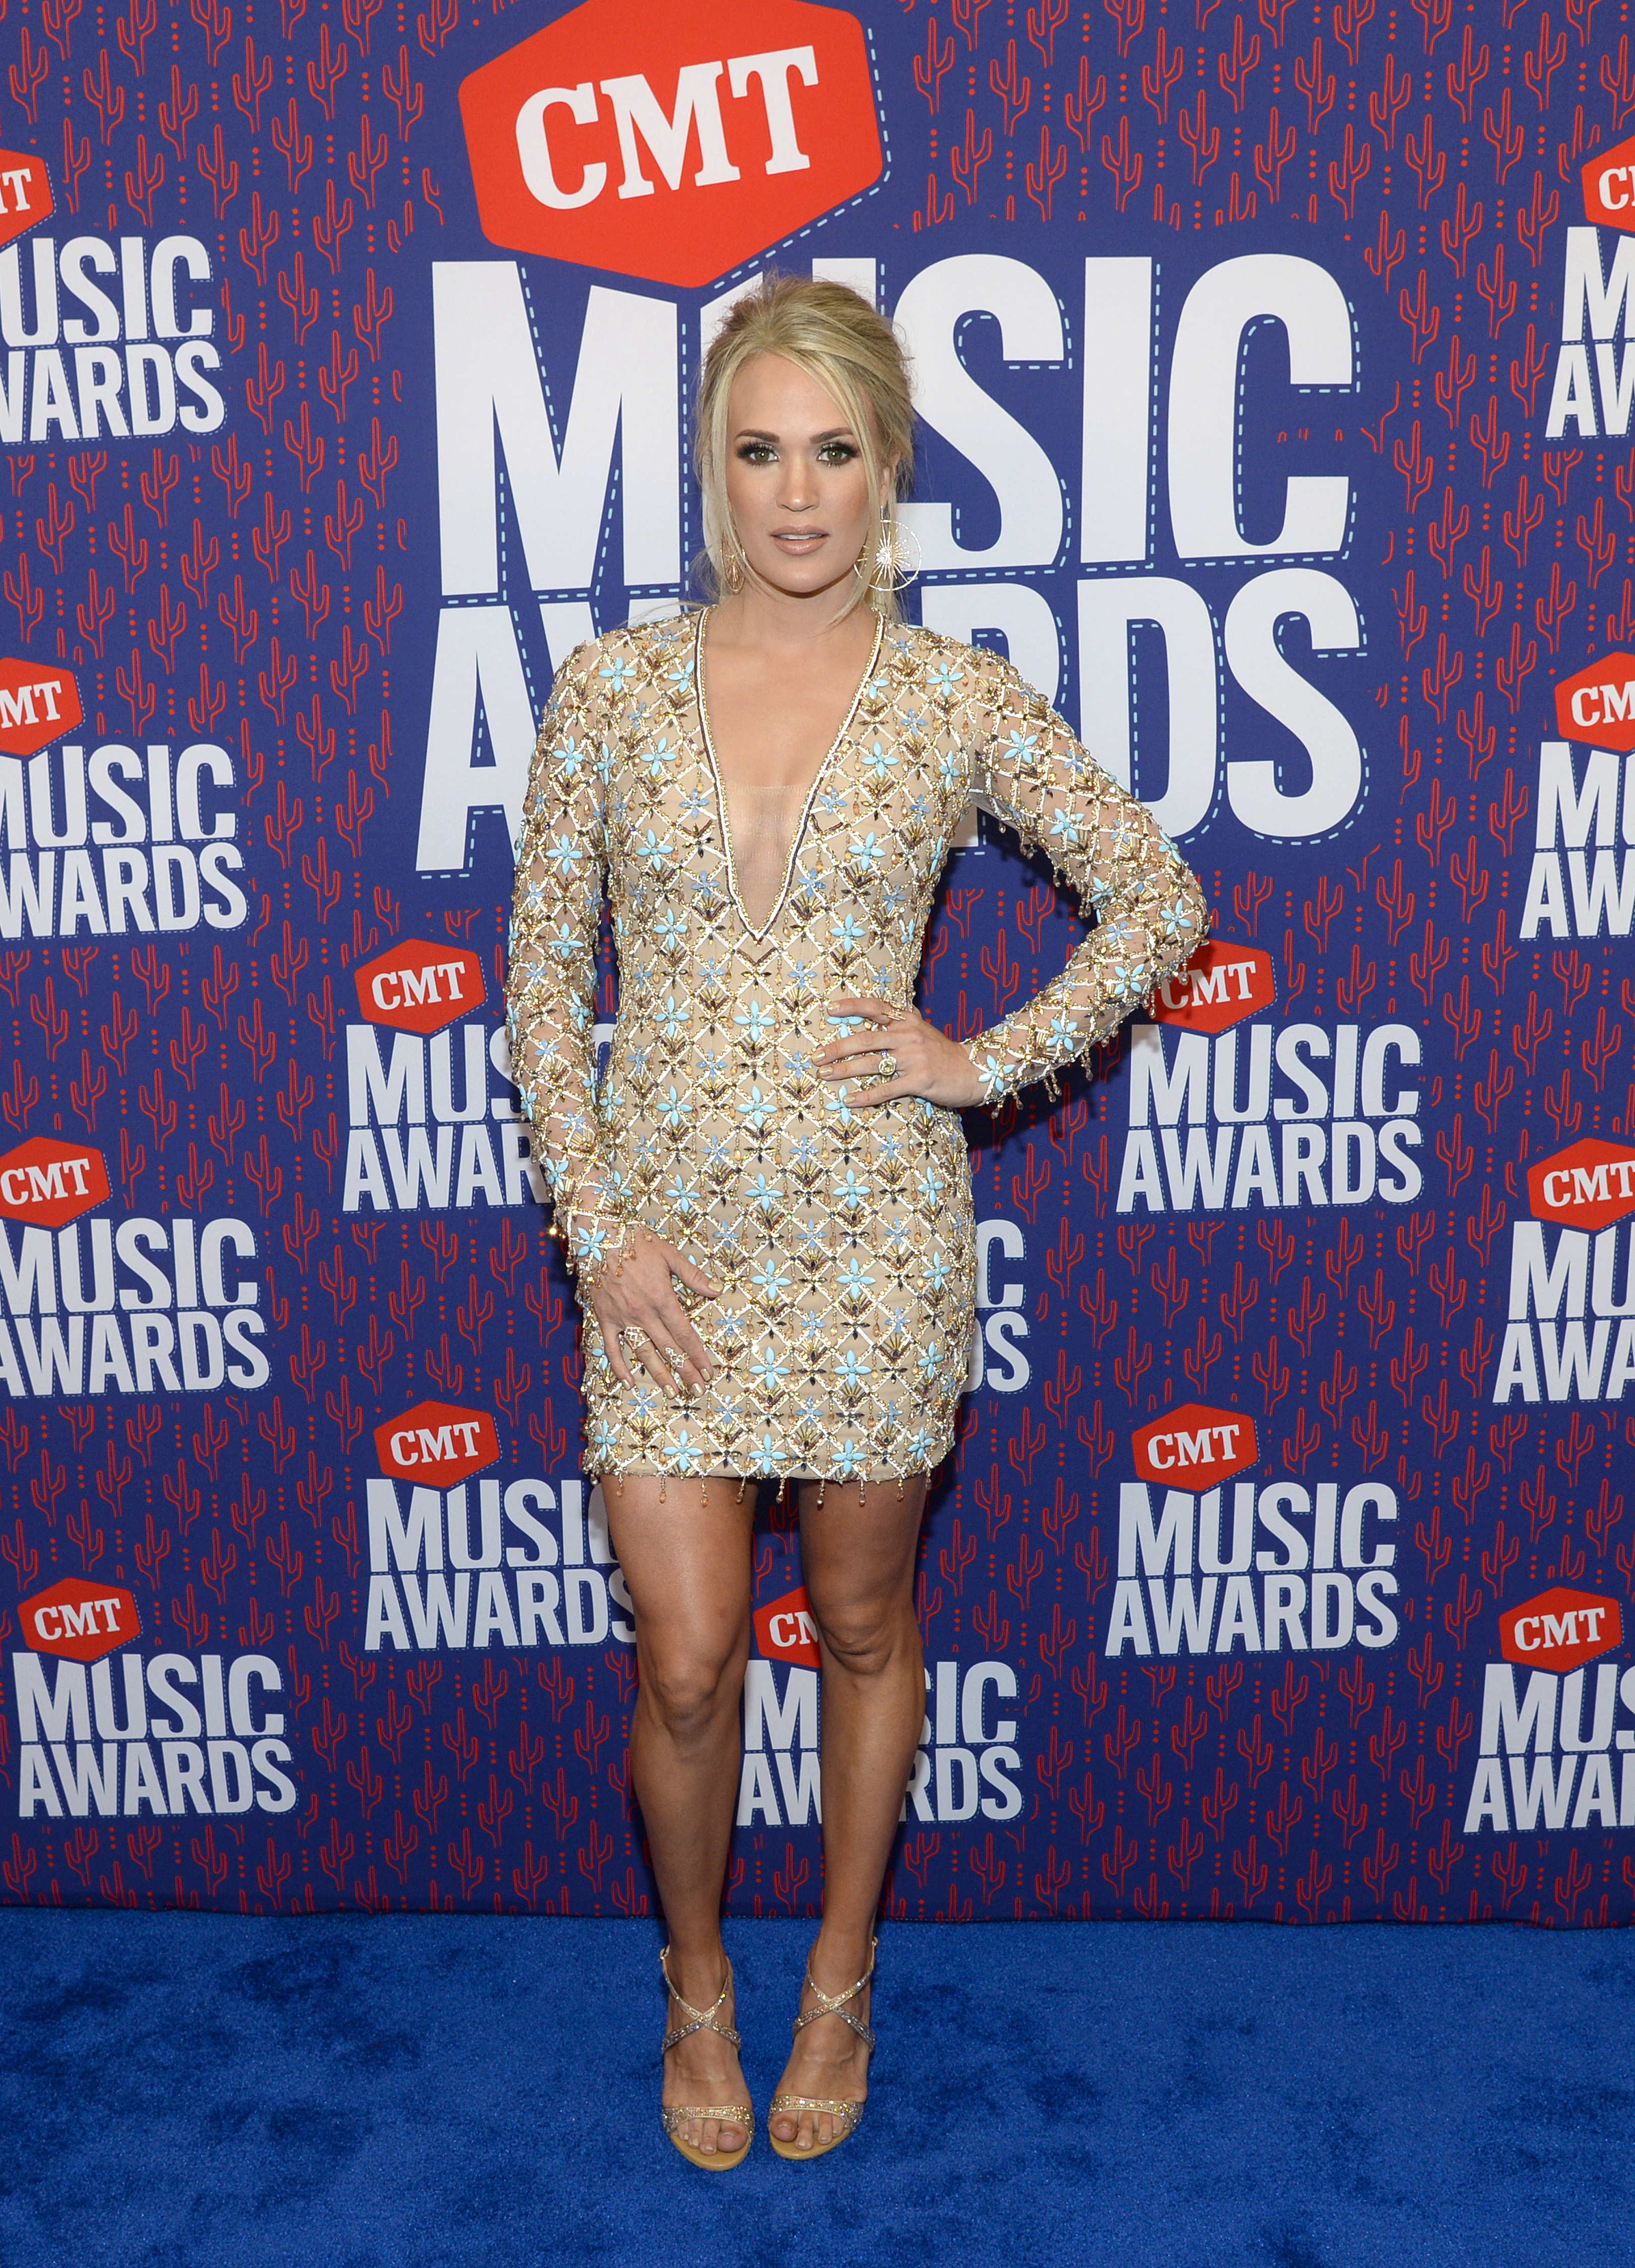 Carrie Underwood, looks